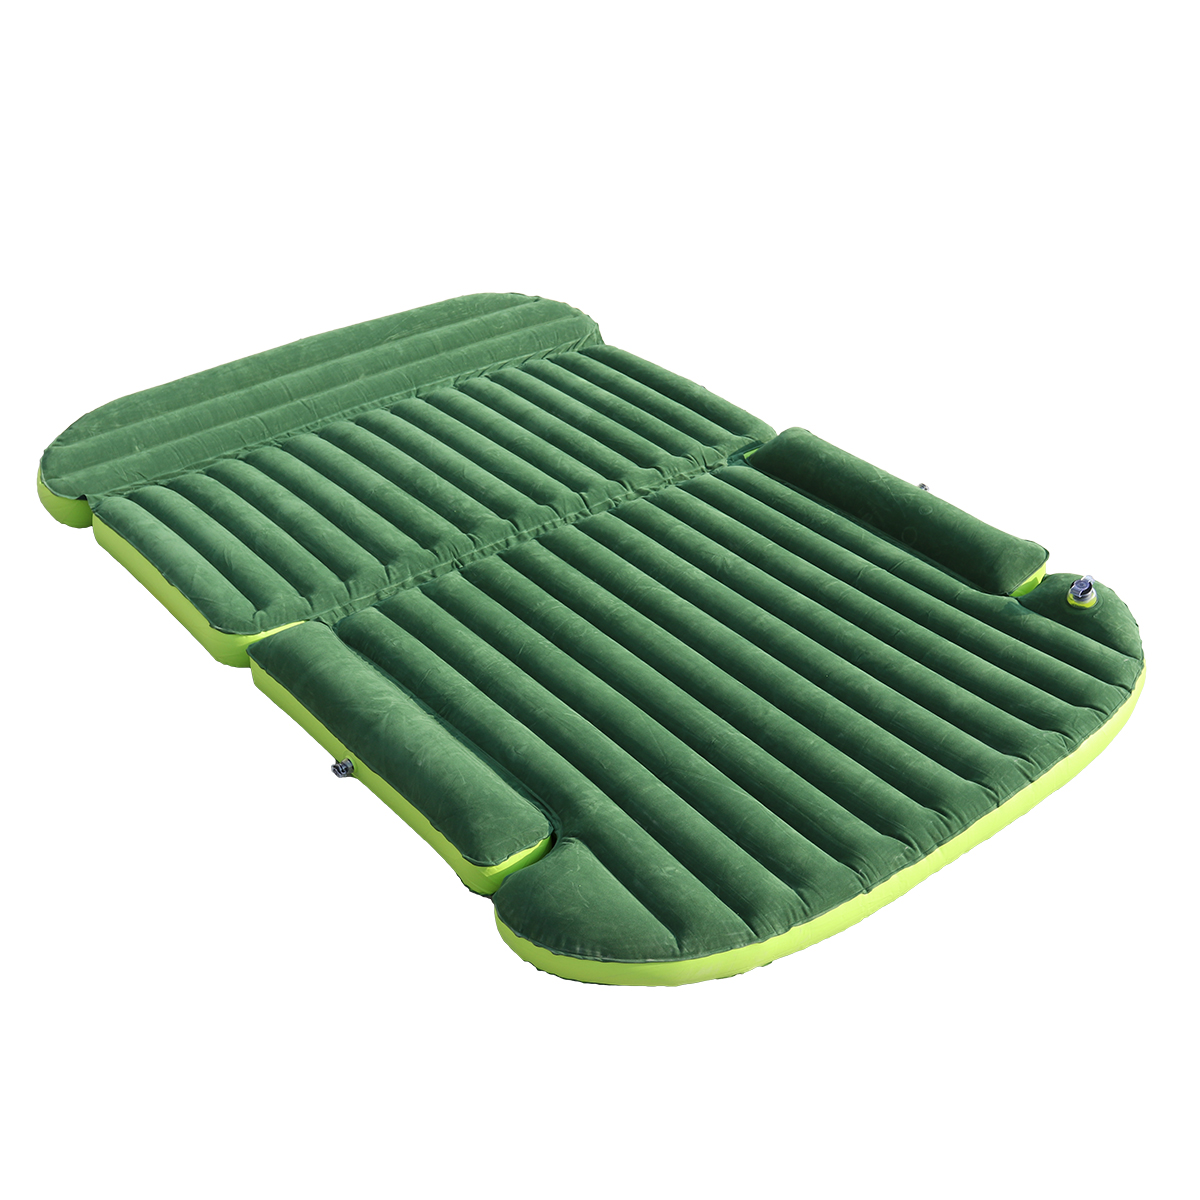 Car Travel Inflatable Mattress Bed Camping Back Seat Extended Mattress PVC Flocking Seat Back bed Inflatable Bed for SUV Car car inflatable mattress car shock bed on board flocking inflatable bed separate type air cushion bed car split car bed